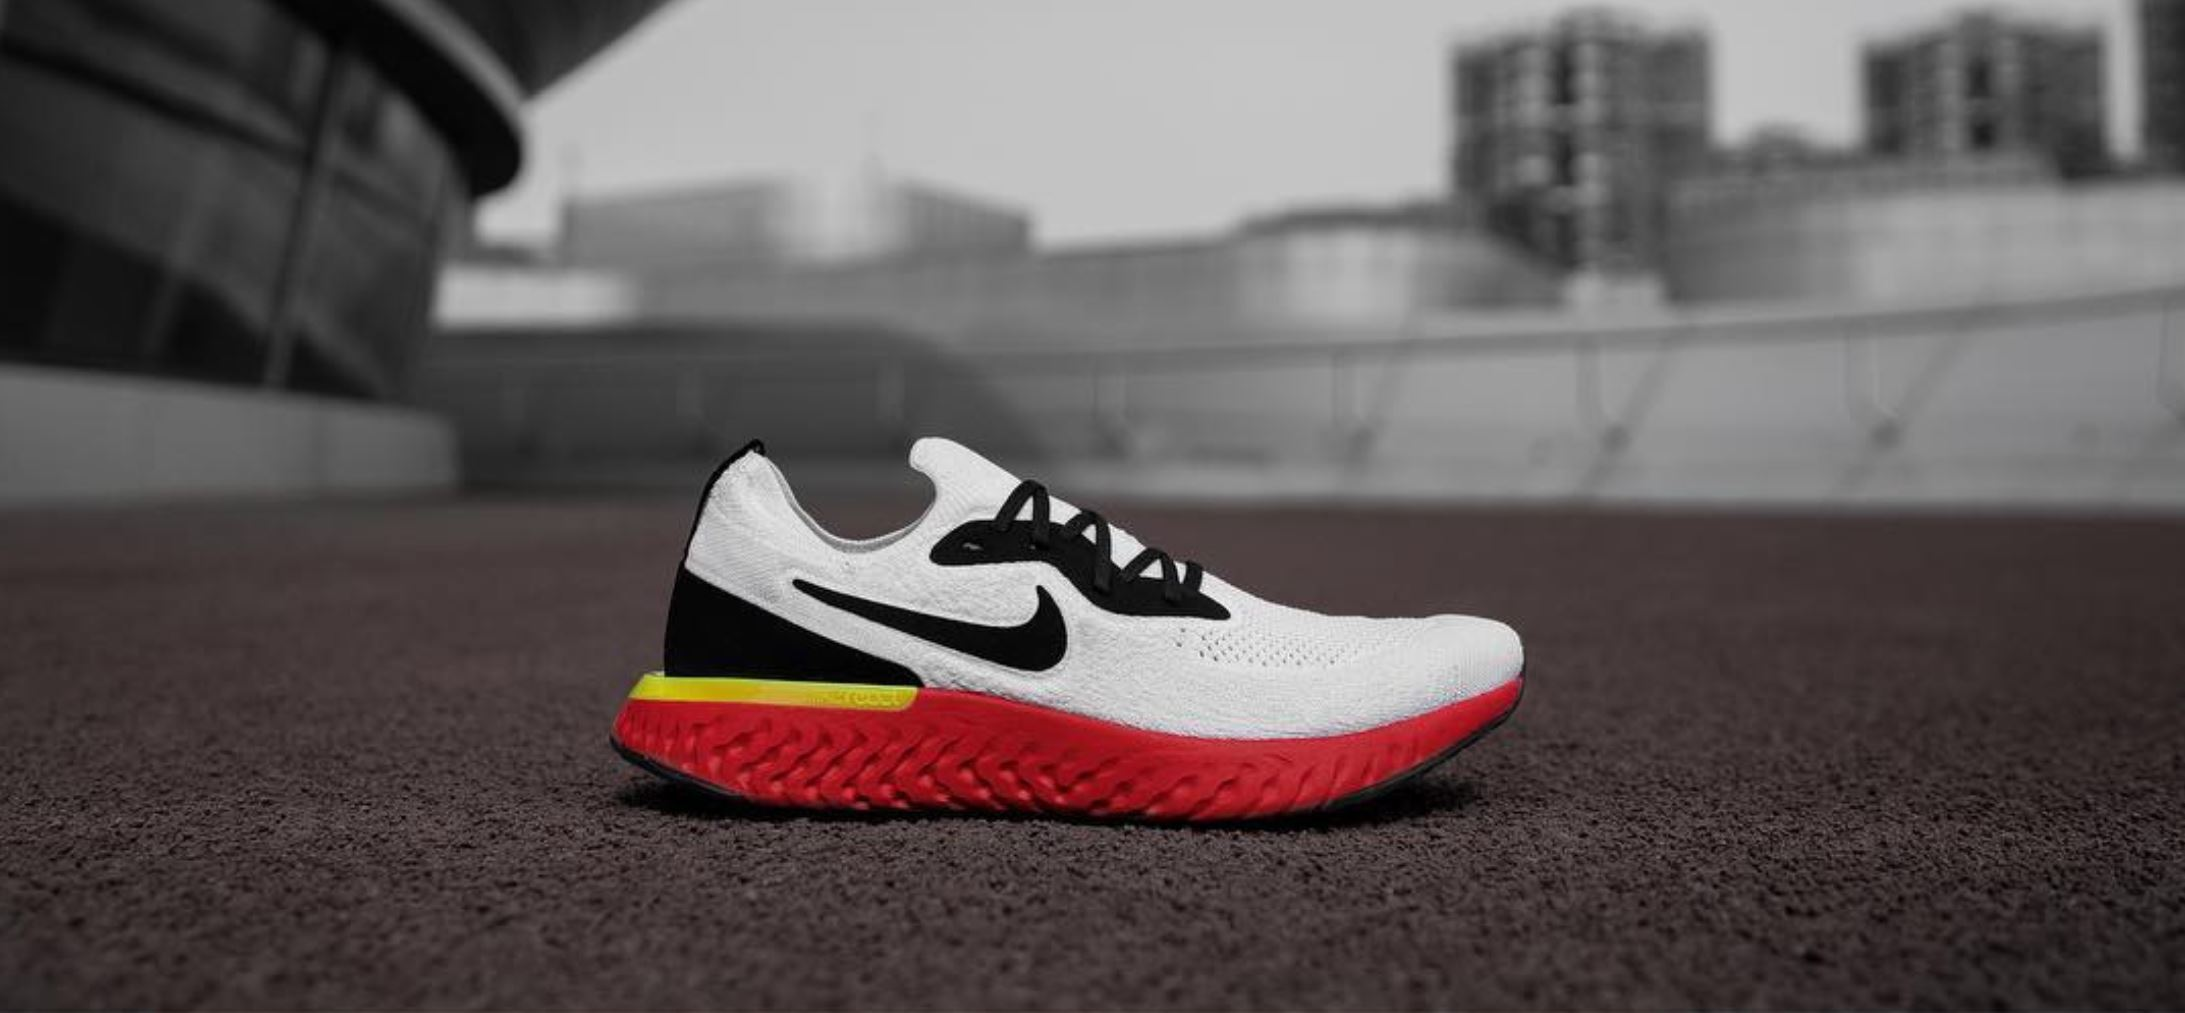 04345bcd0deef new arrivals nike epic react flyknit red germany 8ca94 5e42f